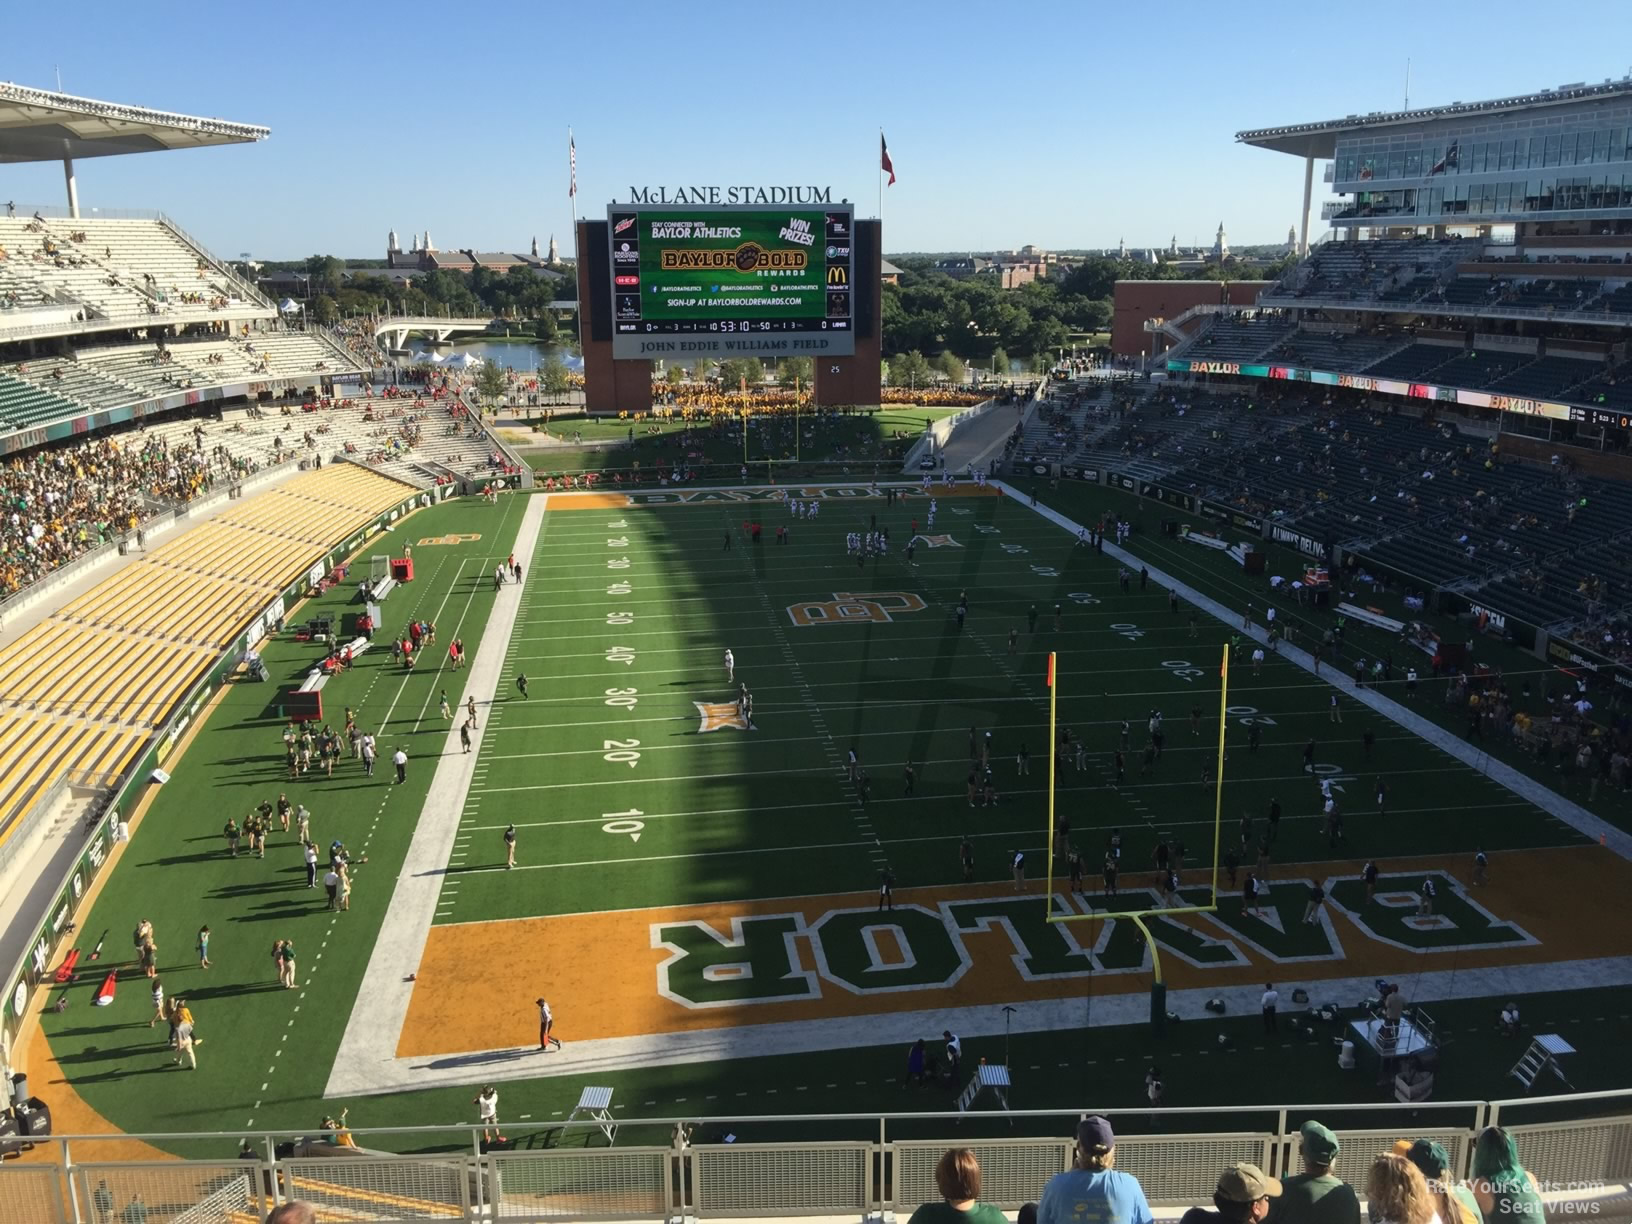 Seat View for McLane Stadium Section 316, Row 10